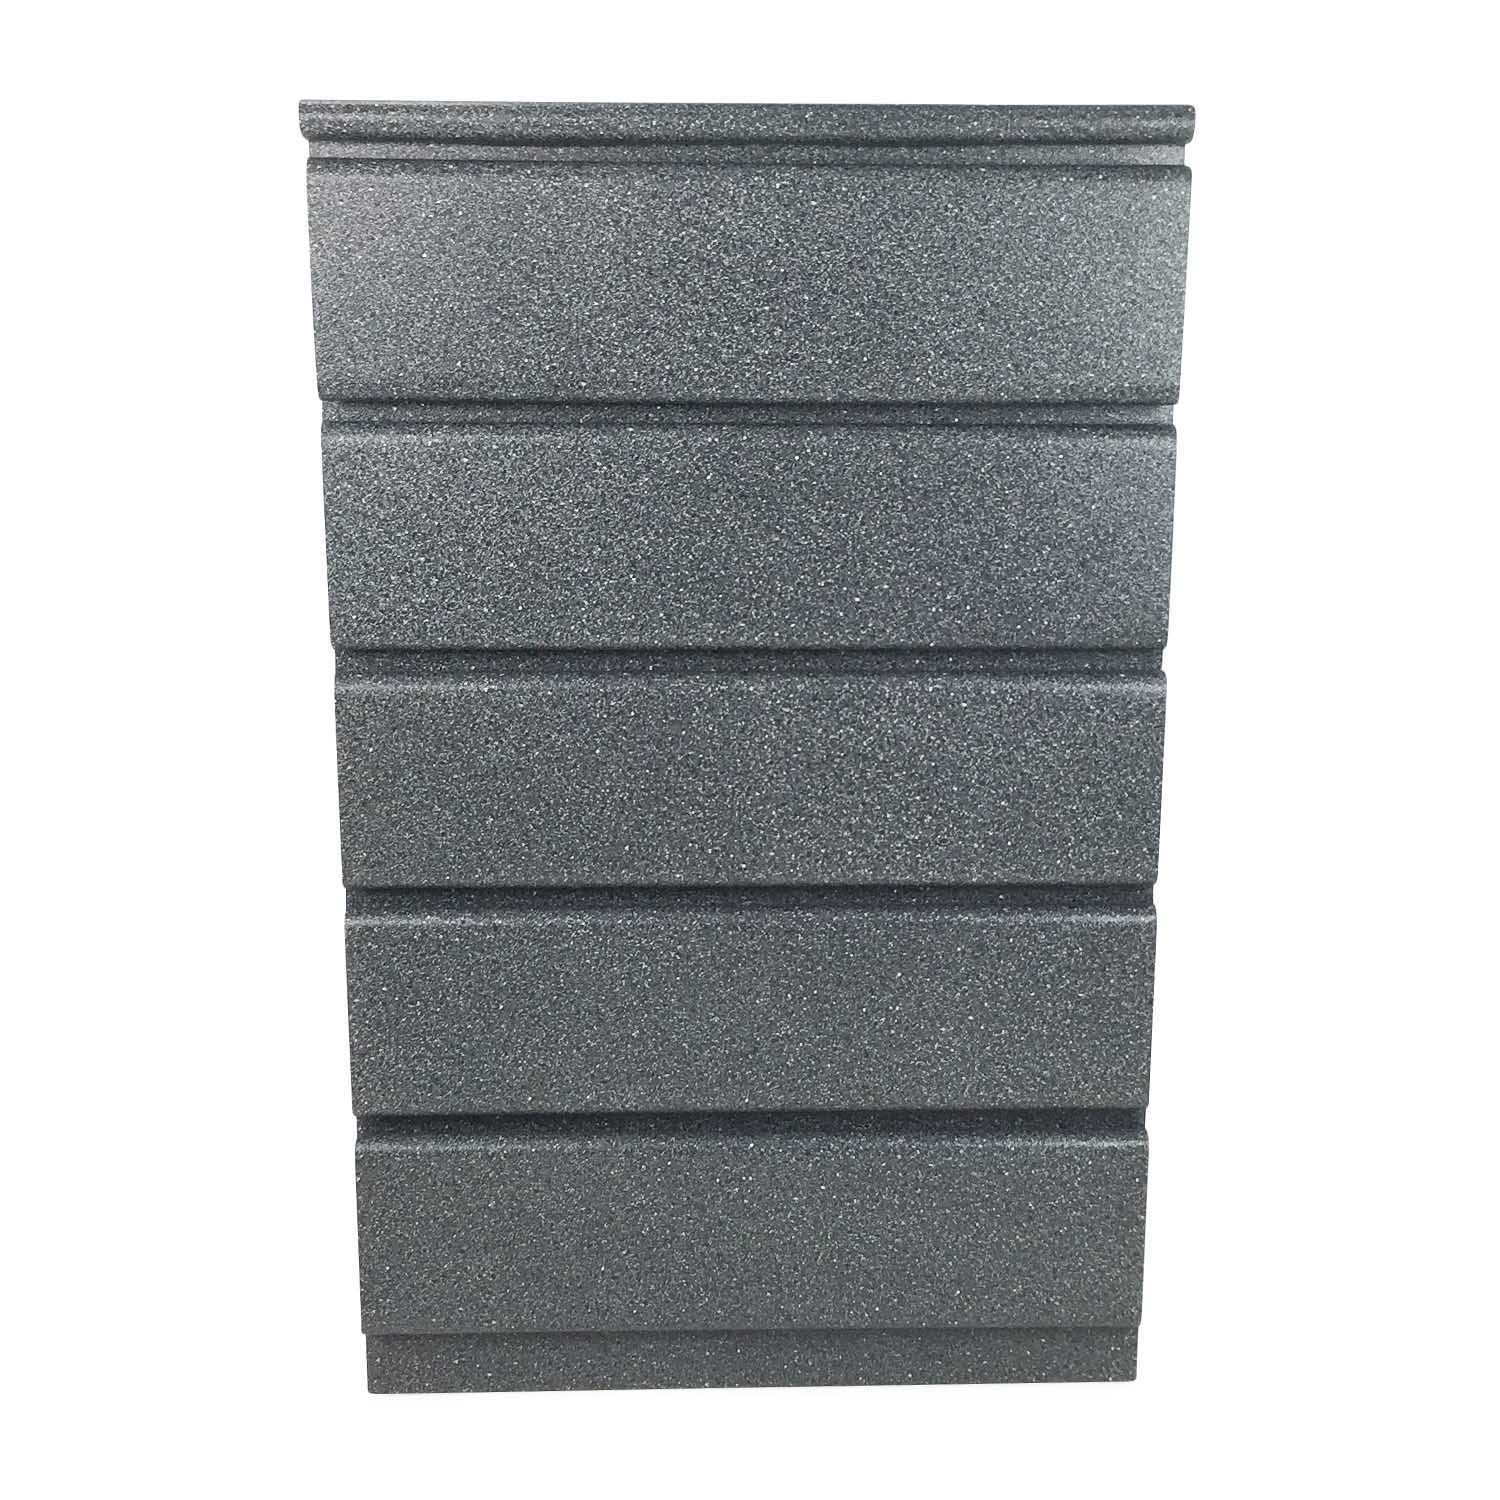 5 Drawer Dresser in Gray / Dressers